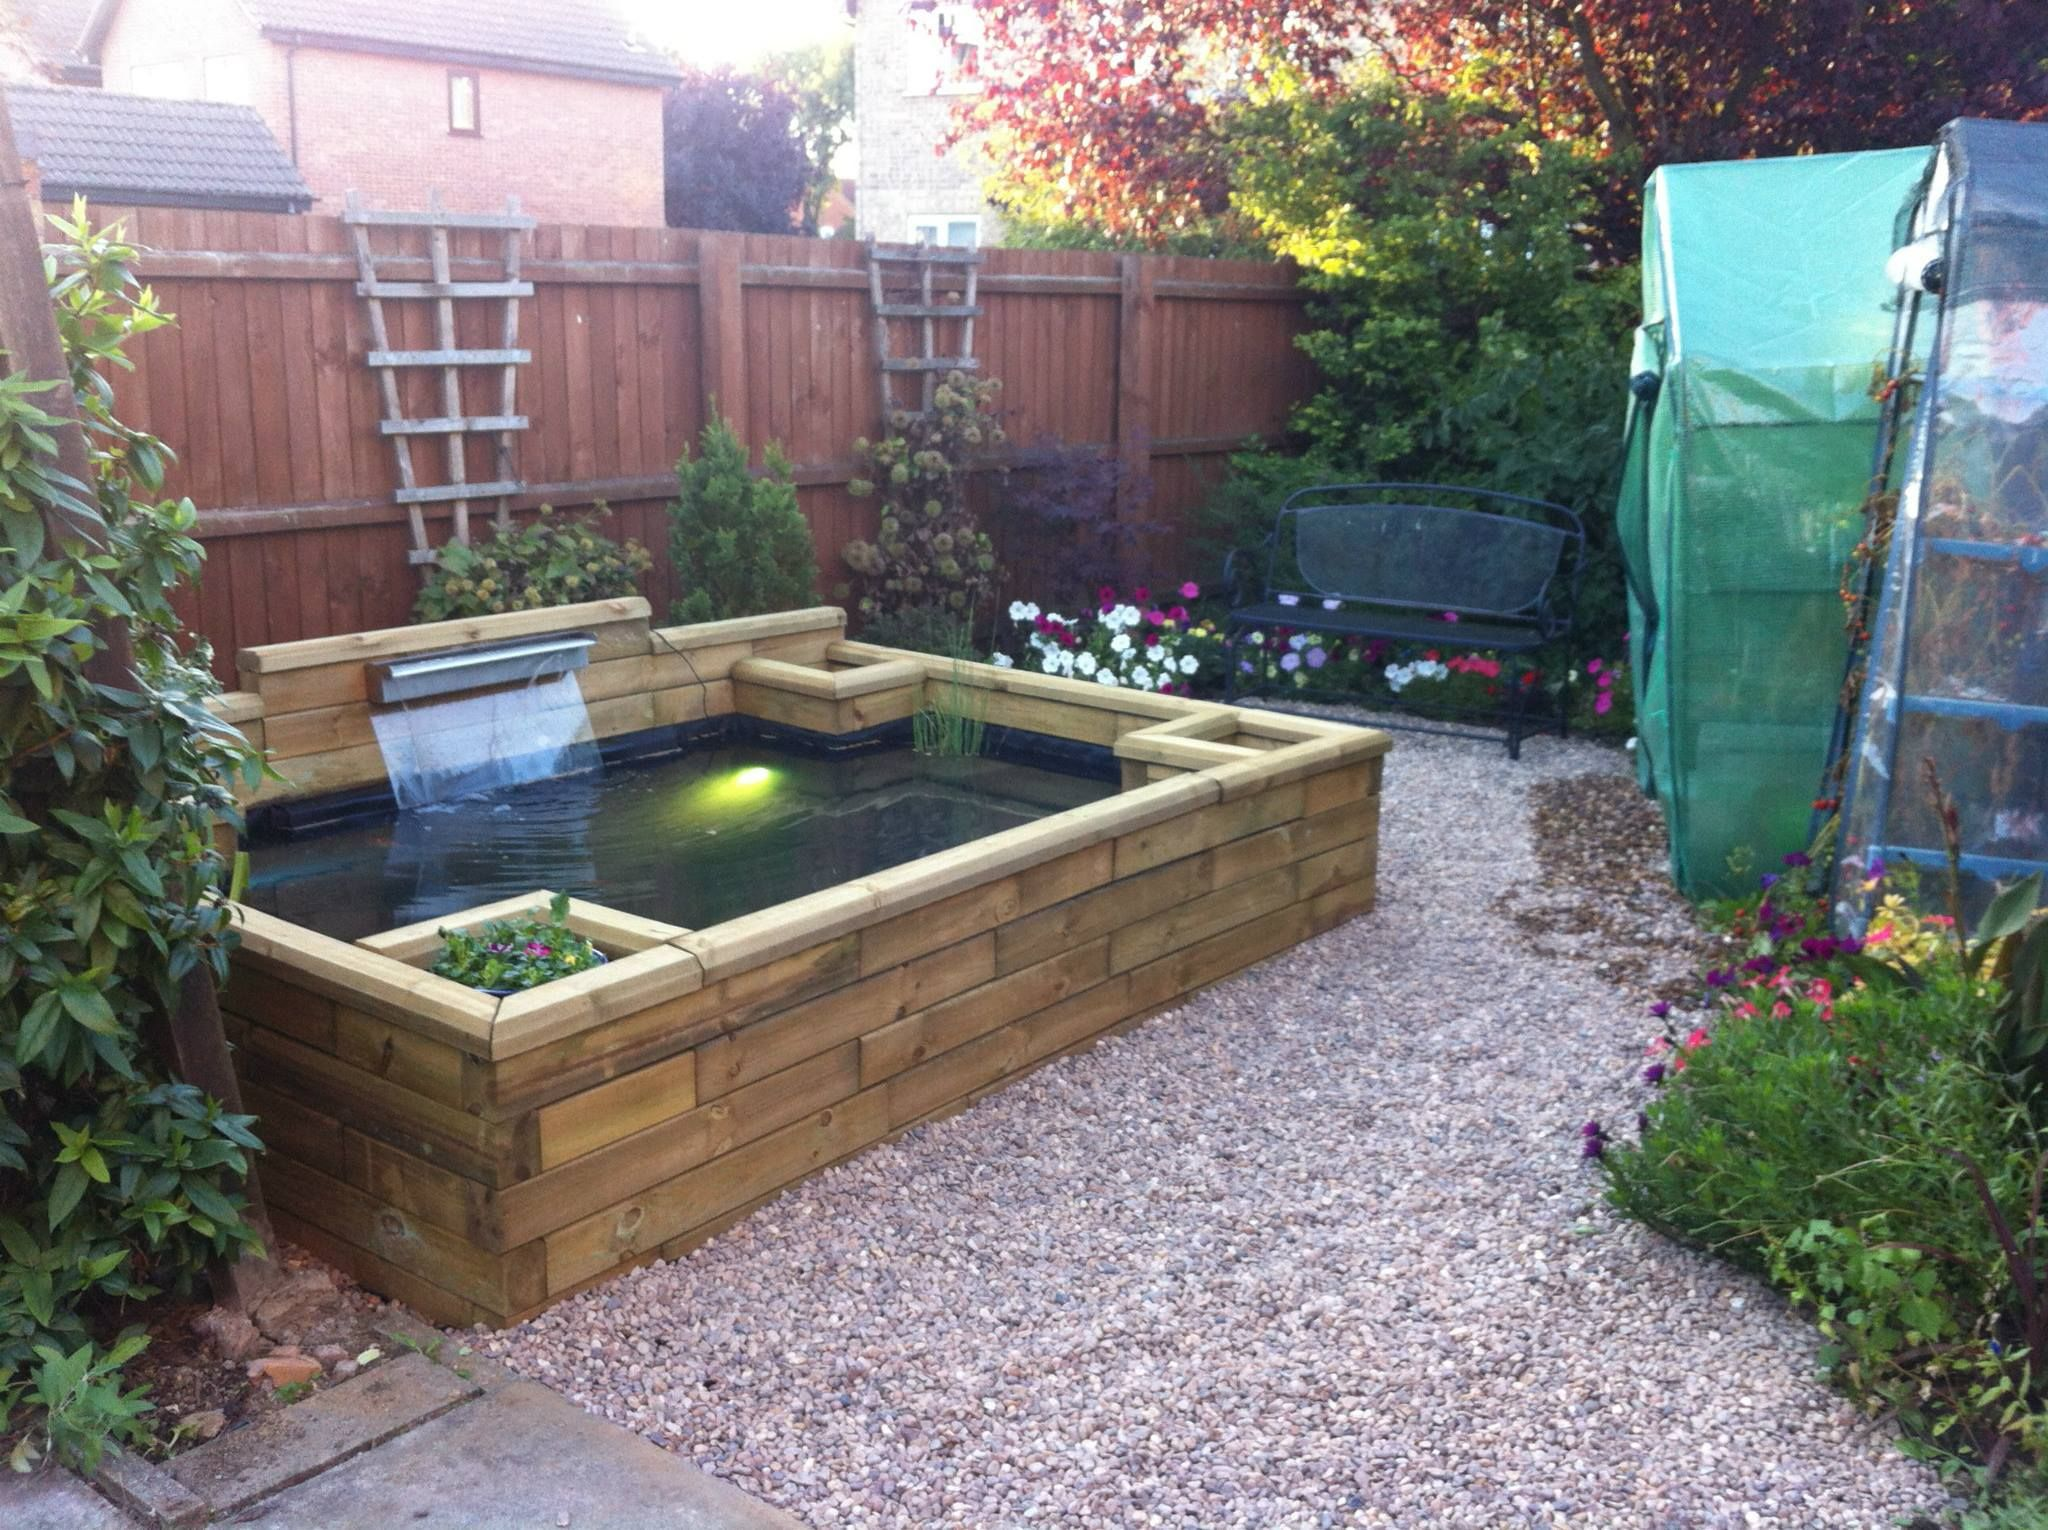 Woodblocx koi pond customers for Garden ponds uk